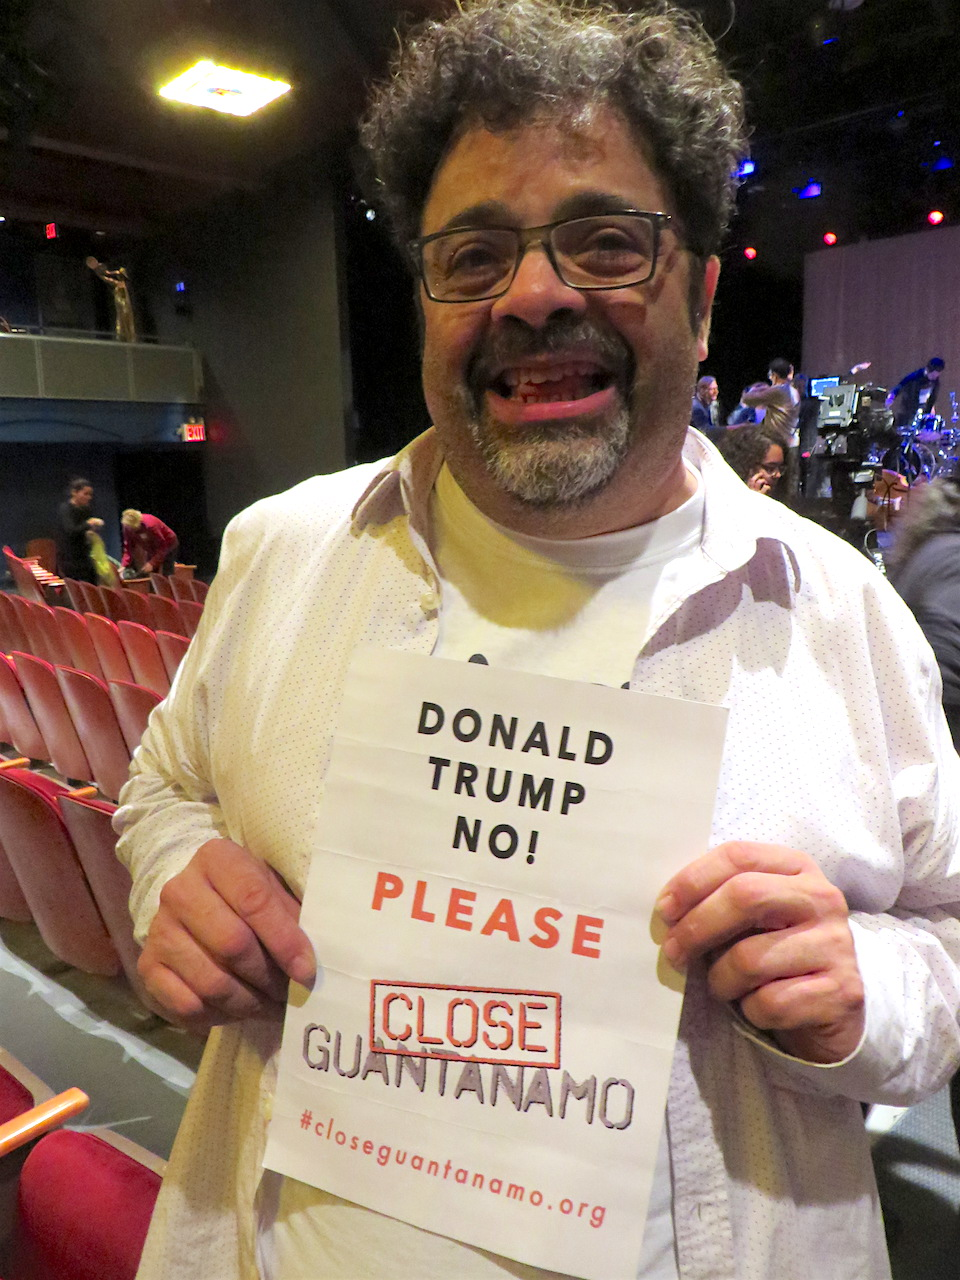 Jazz musician Arturo O'Farrill urging Donald Trump to close Guantanamo (Photo: Andy Worthington).